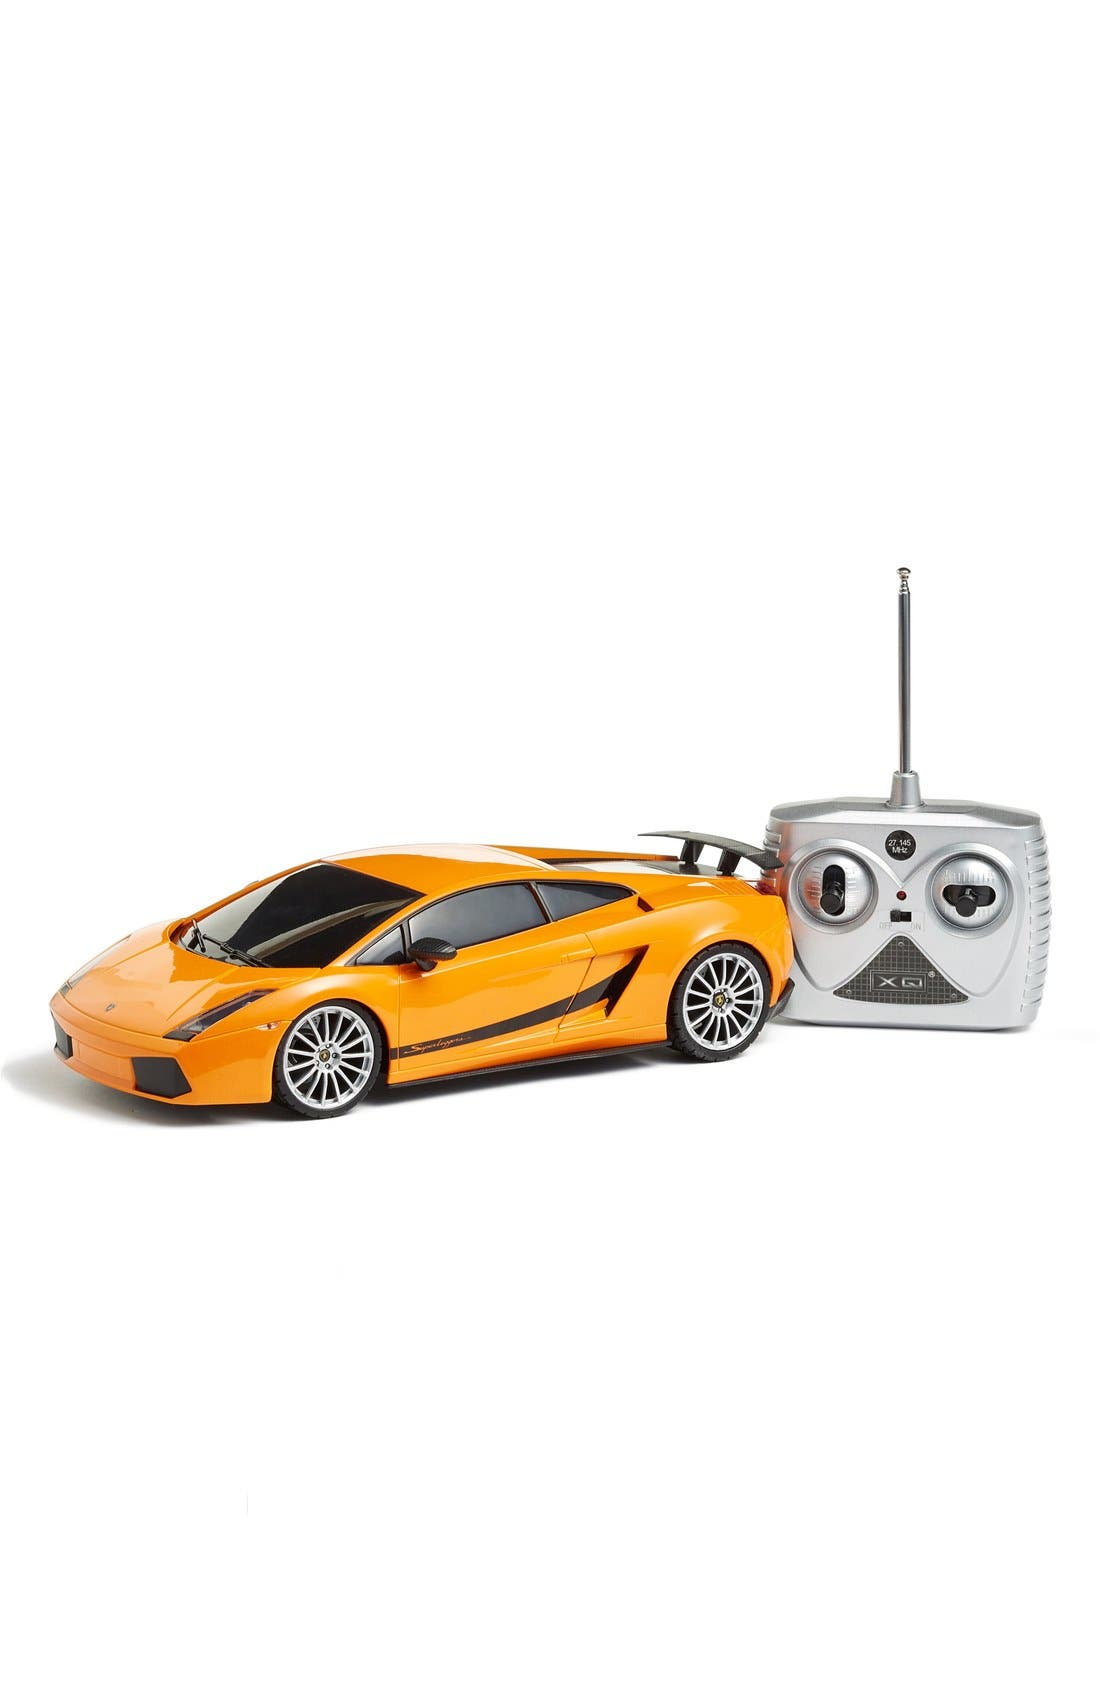 Lamborghini Superleggera 1:18 Scale Remote Control Car Toy,                             Main thumbnail 1, color,                             Orange